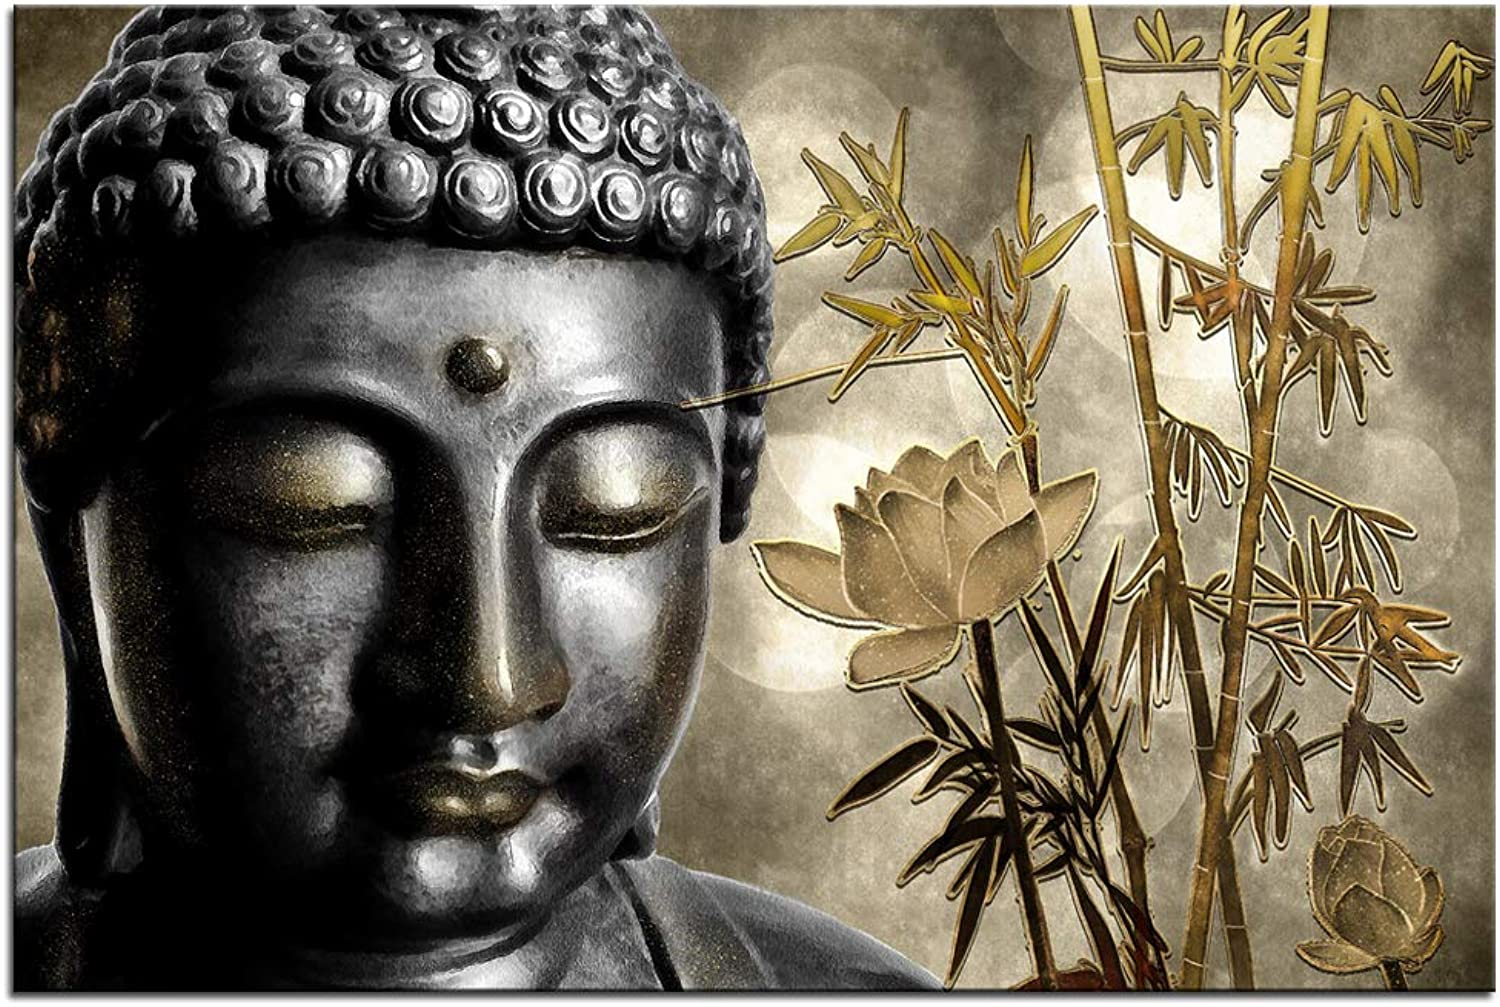 Sechars - Buddha Wall Art Canvas gold Bamboo Lotus Flower Picture Canvas Prints for Home Living Room Office Zen Wall Decor Paintings Stretched and Framed,24x36inch